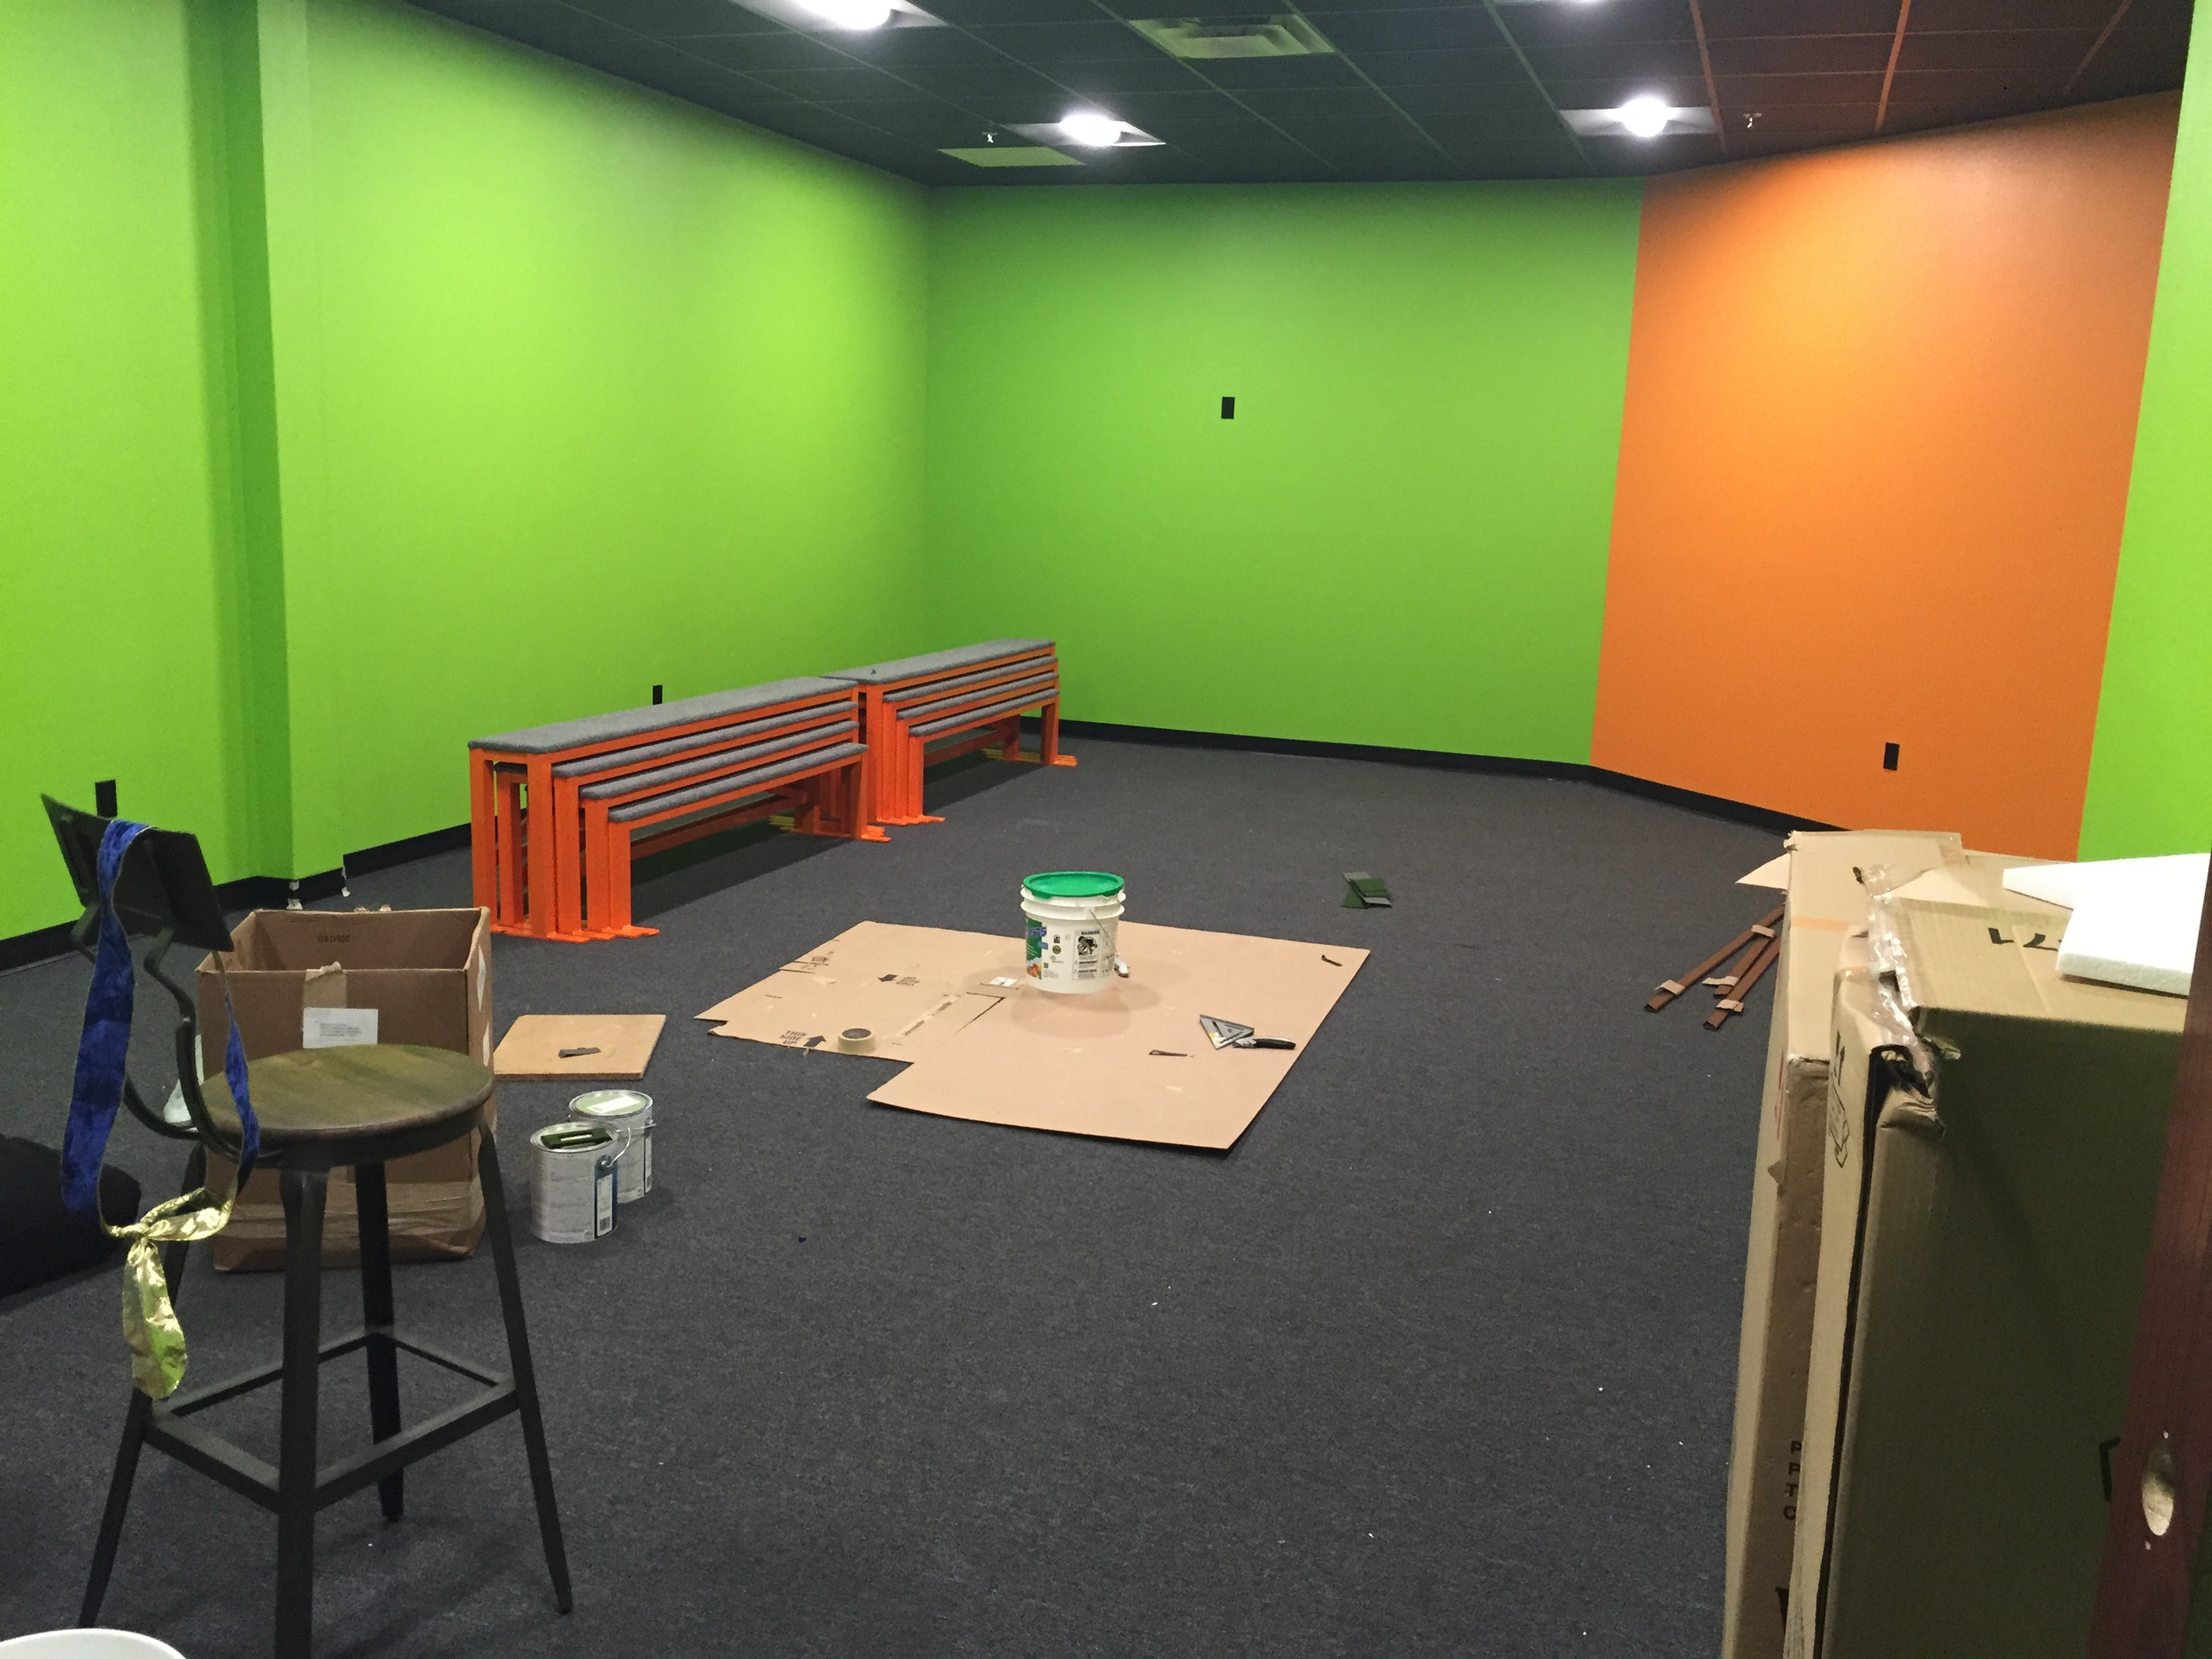 The kids' gathering space is starting to take shape.